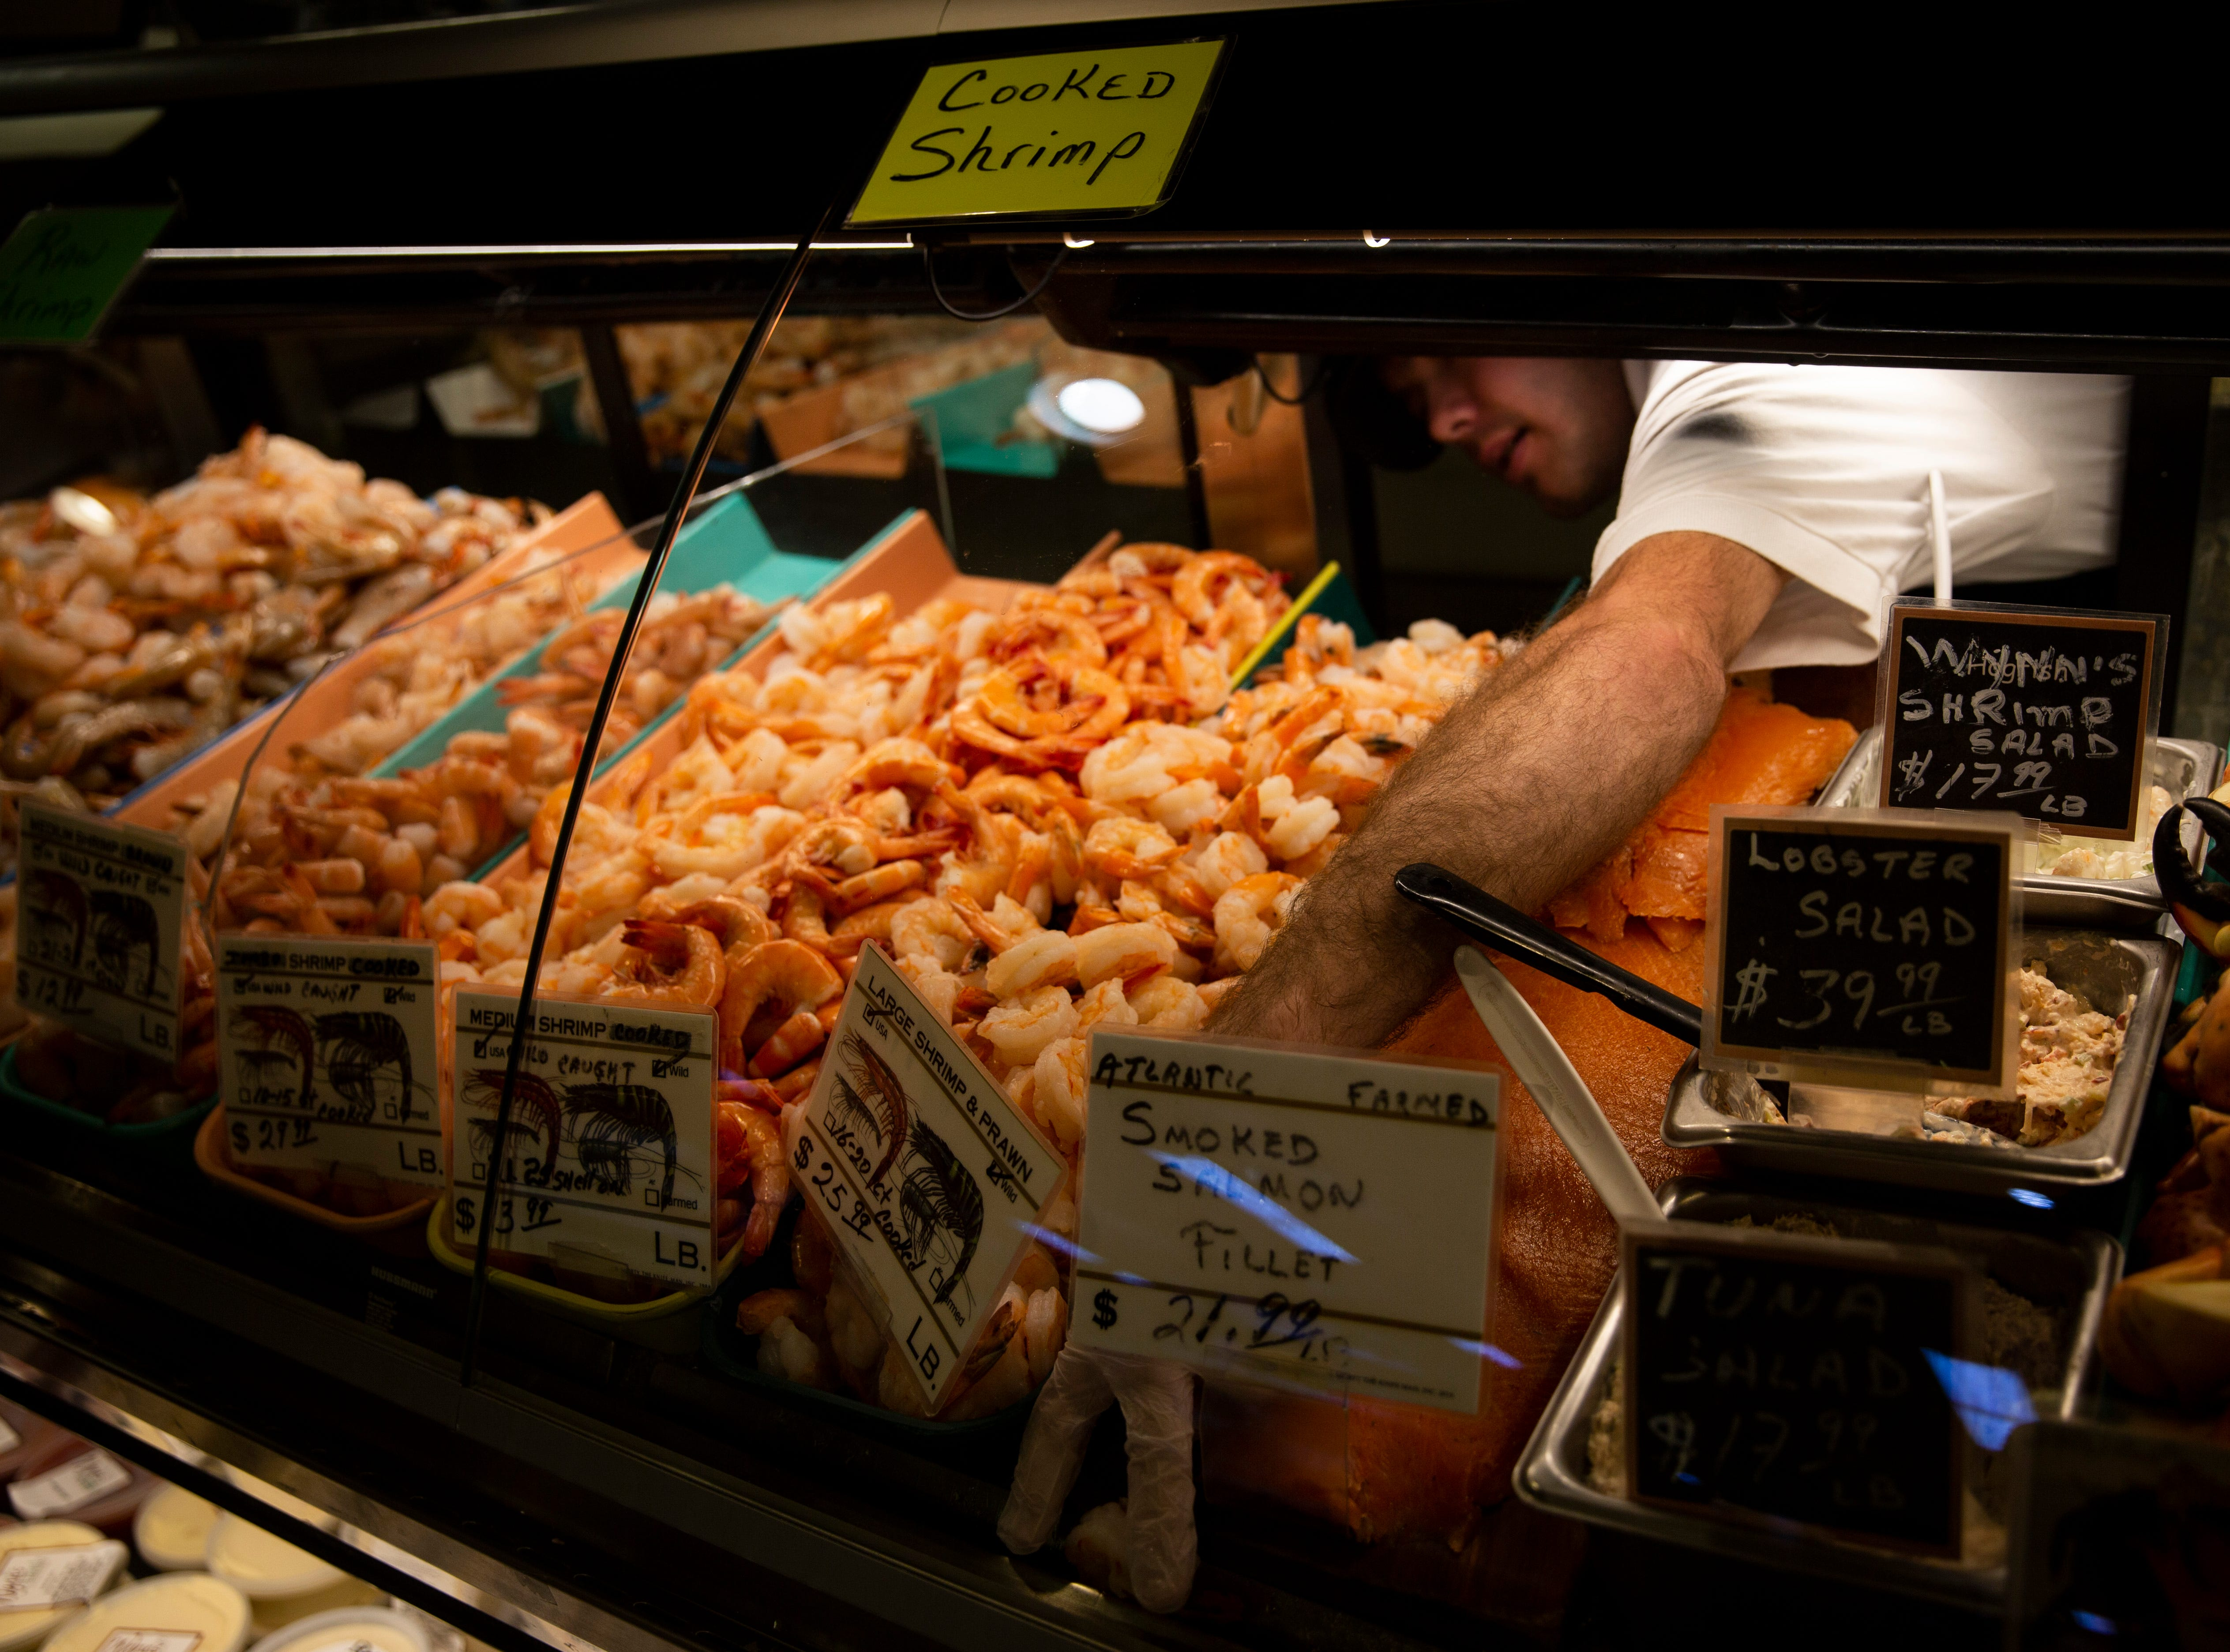 Larry Landberg works in the seafood department on Friday, Dec. 21, 2018, at Wynn's Market in Naples. Wynn's Market is celebrating 80 years of business this year.